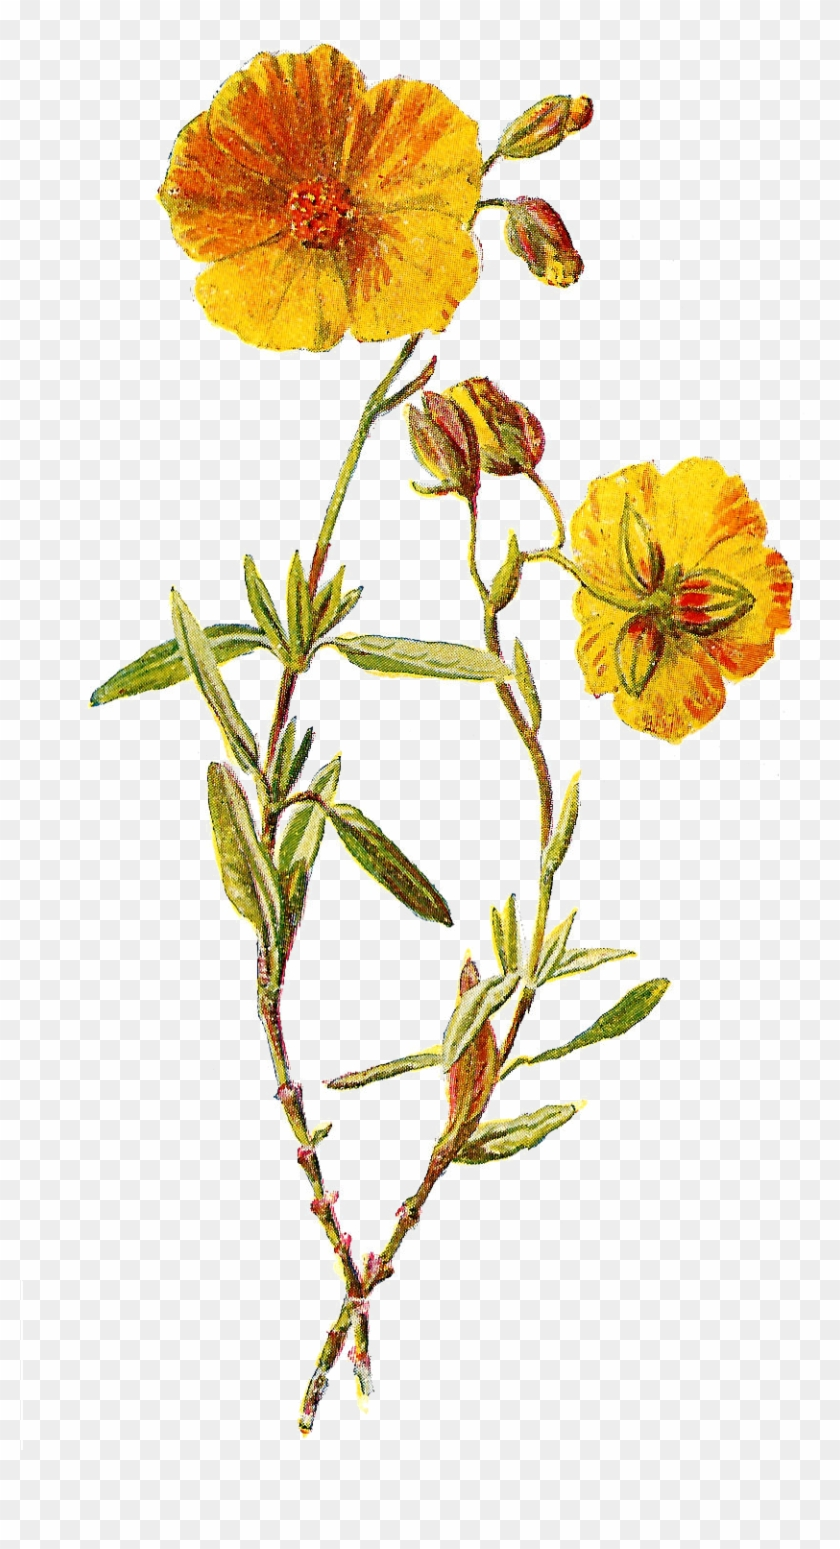 These Two Lovely Wild Flower Illustrations Are From - Yellow Flowers Illustration Png #289869